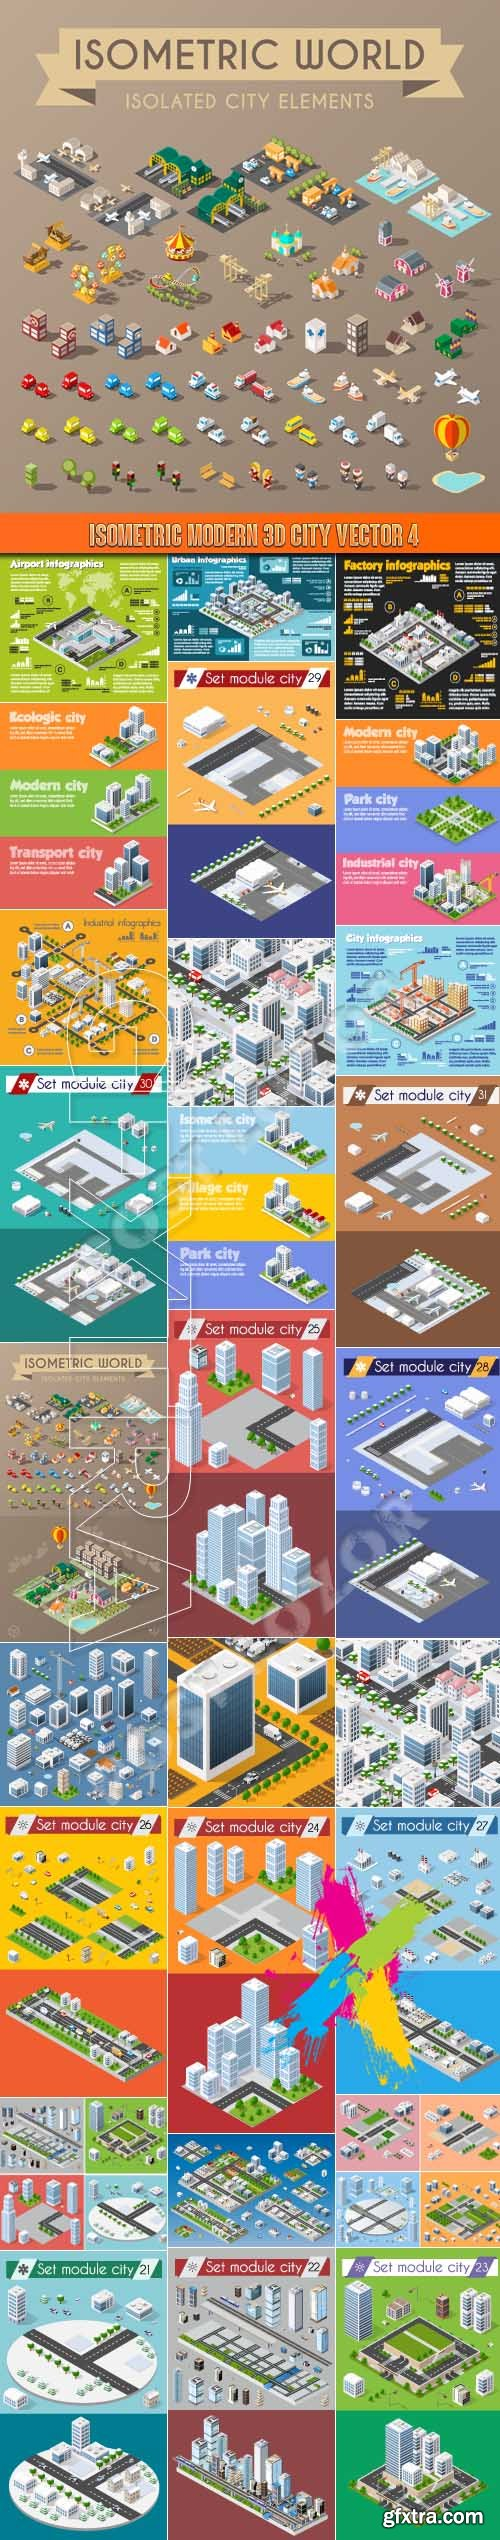 Isometric modern 3D city vector 4